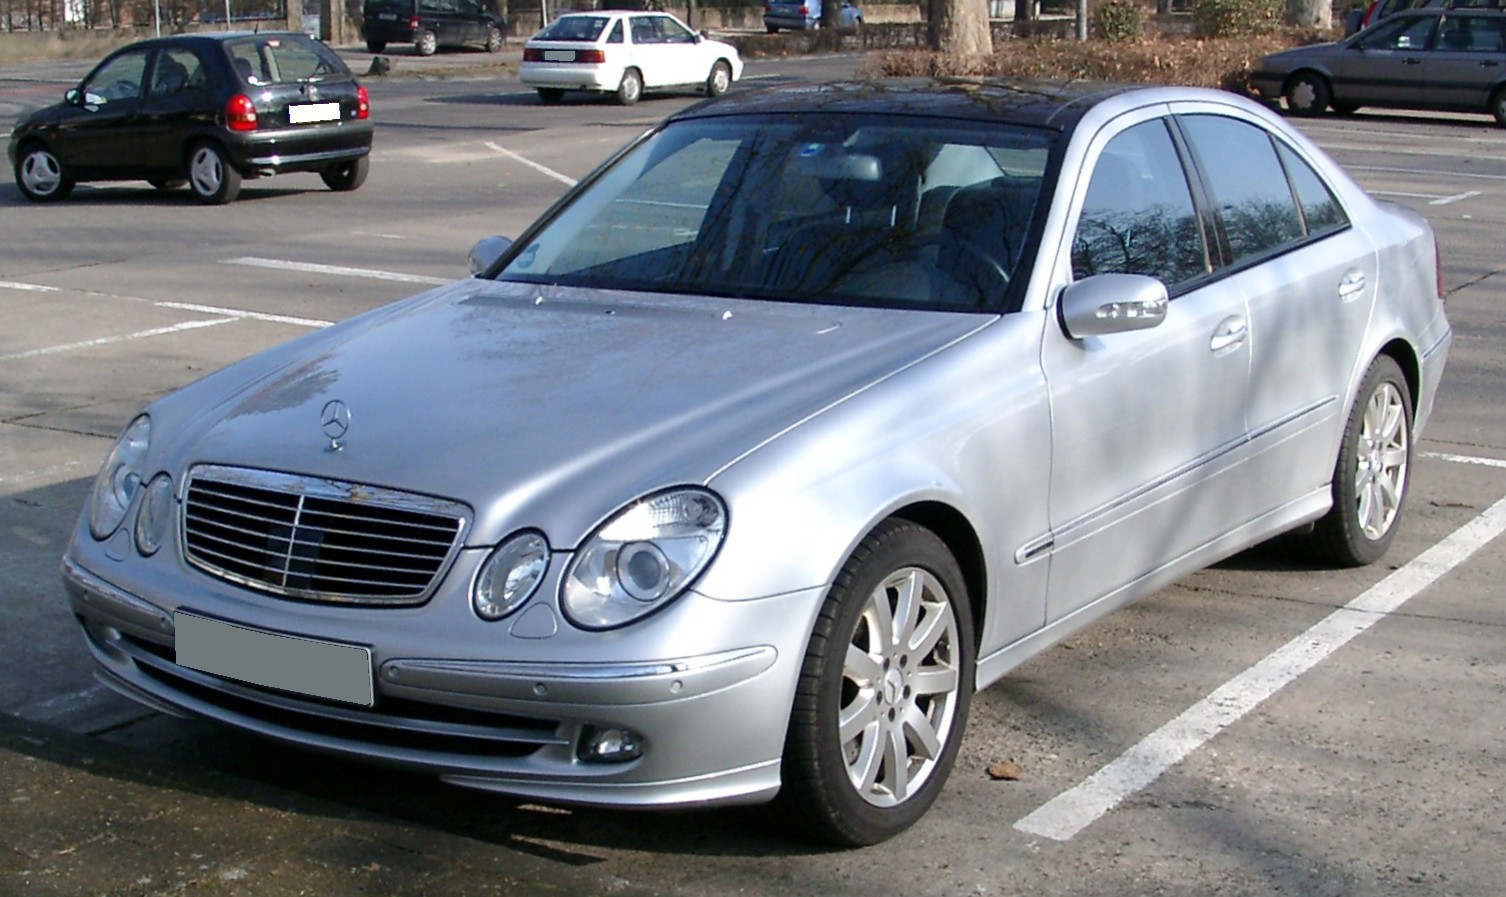 Mercedes W211 Benz E350 4matic Tuning Benztuning Wiring Diagram Get Free Image About